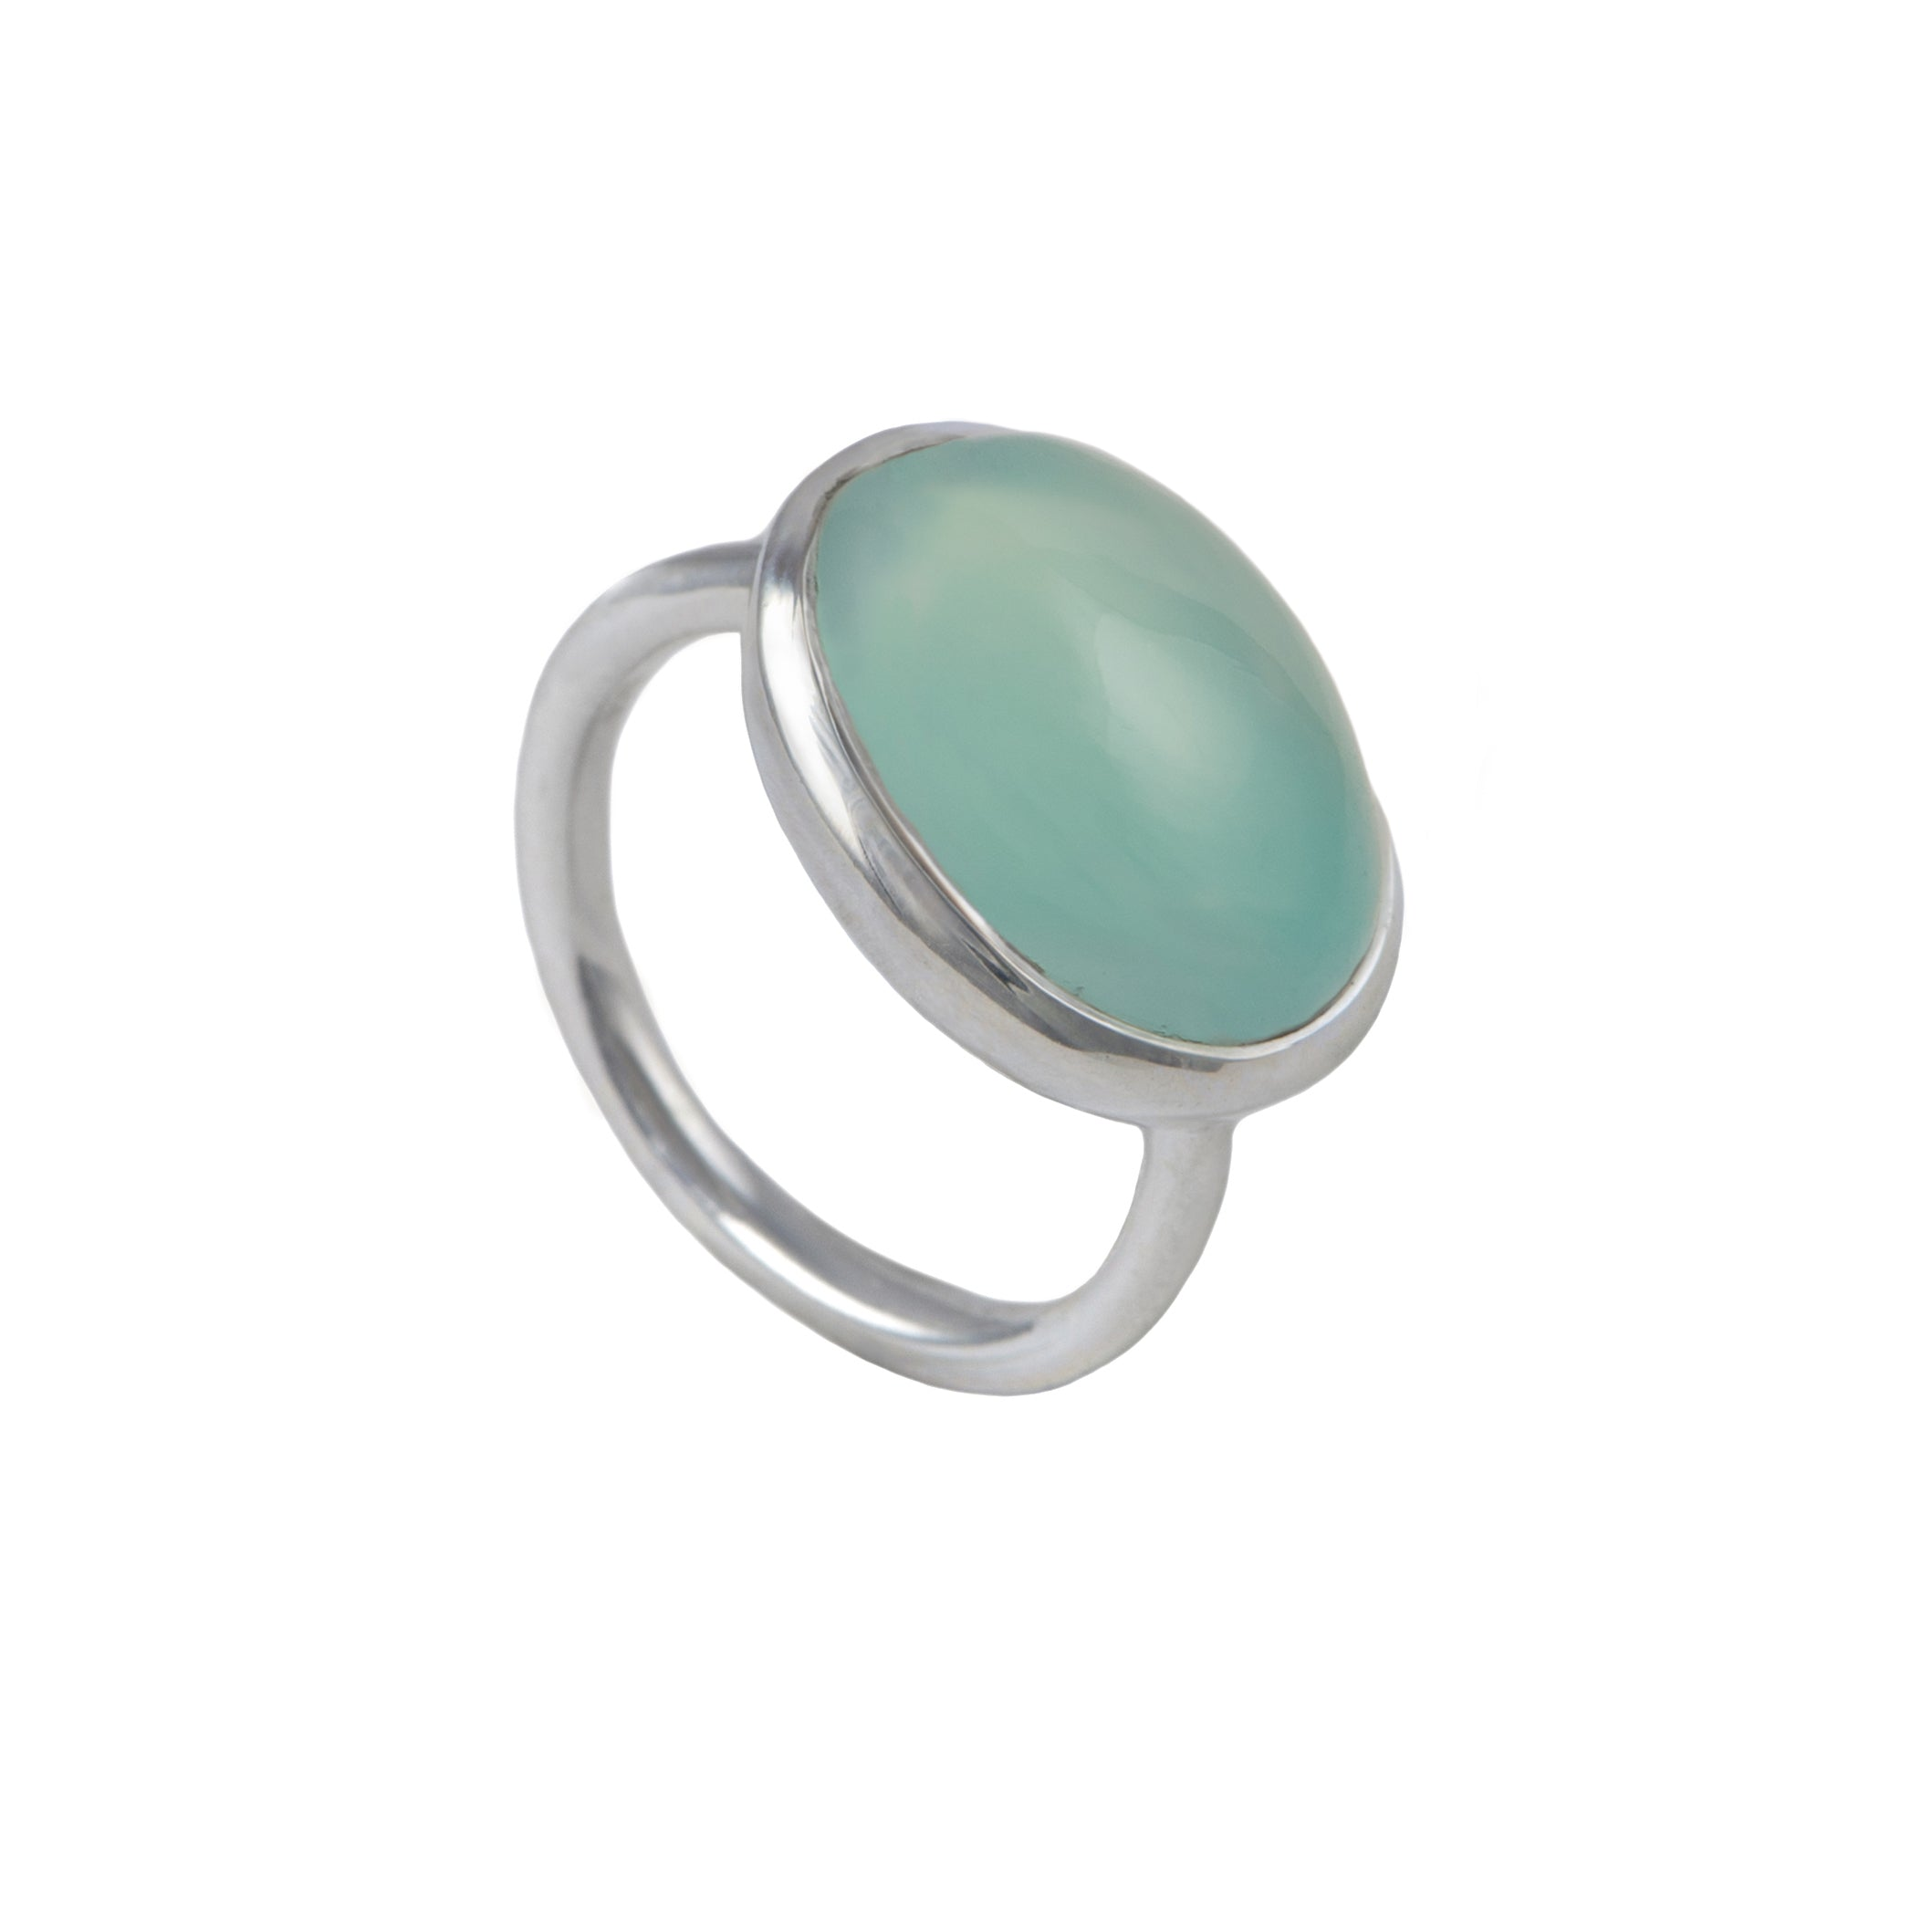 Cabochon Oval Cut Natural Gemstone Sterling Silver Ring - Aqua Chalcedony